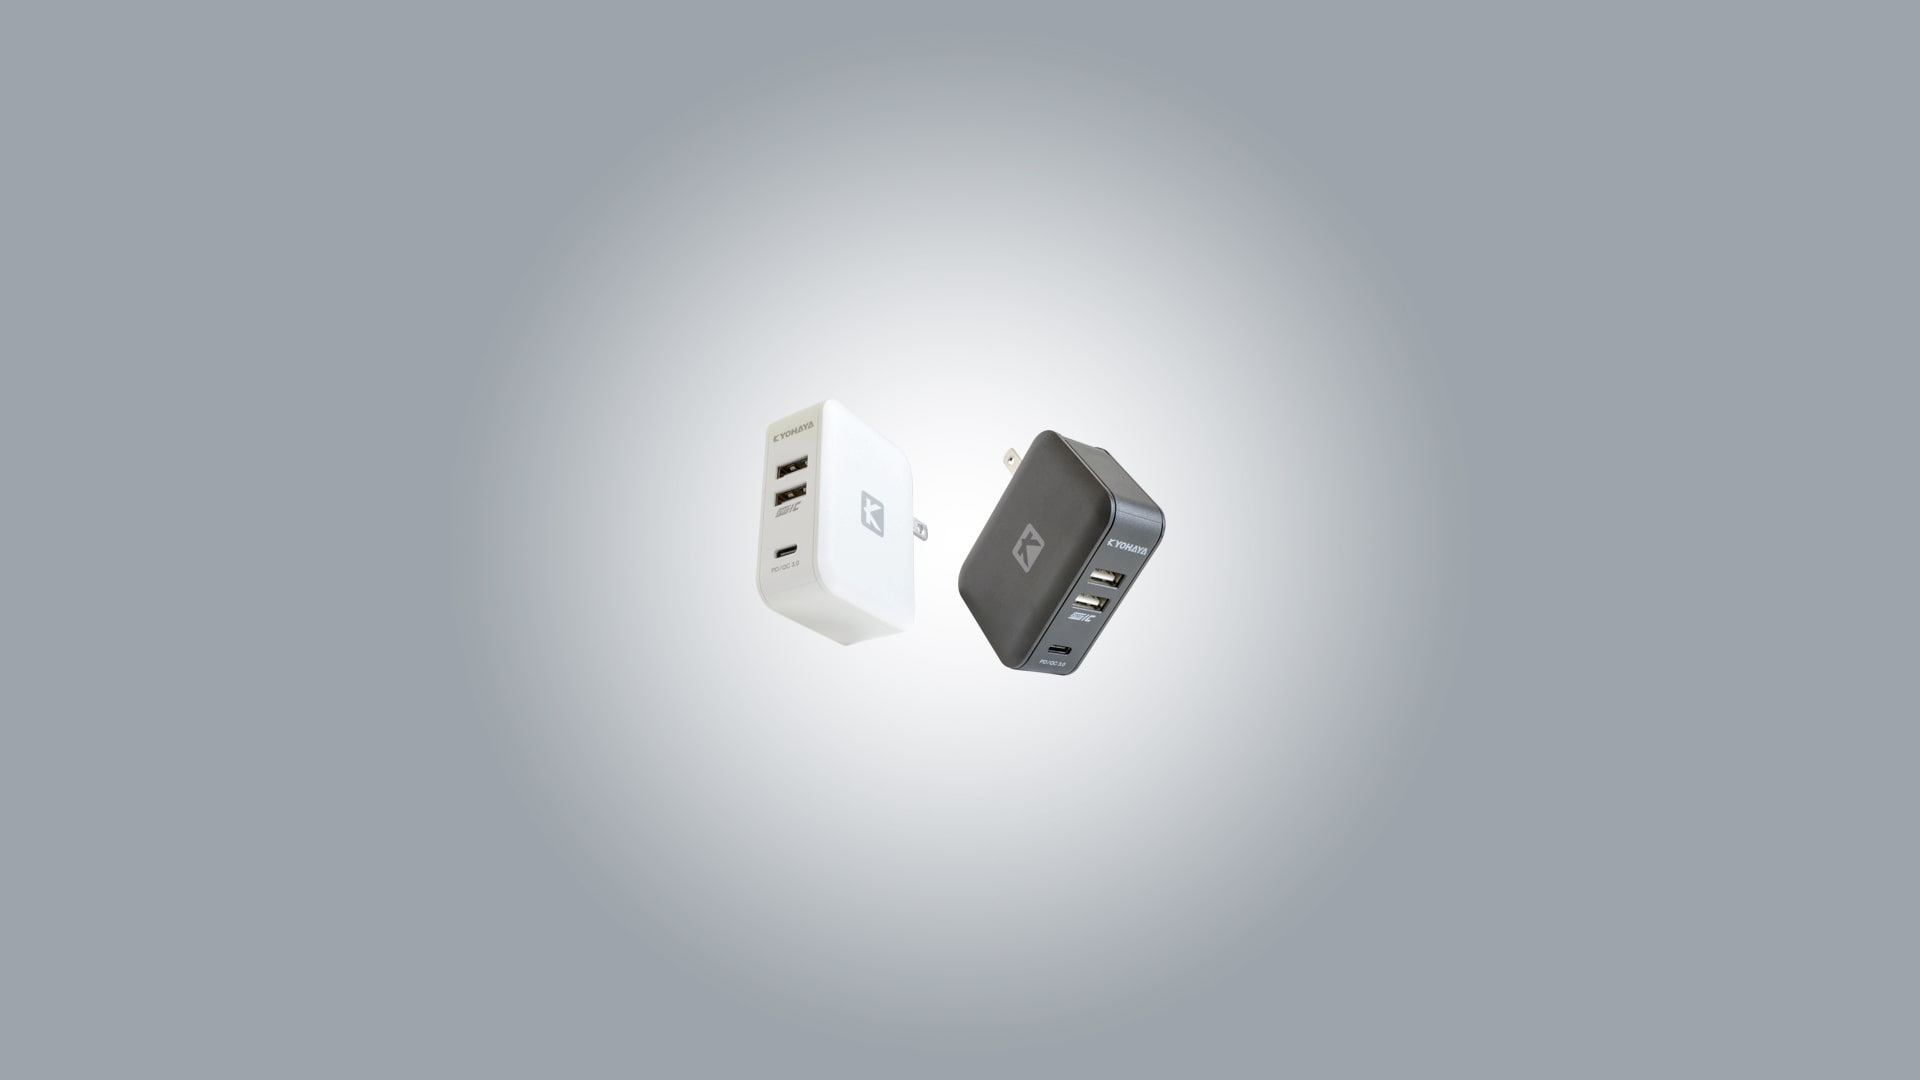 USB充電器 PD/QC対応 30W | CHARGE GEAR QUICK POWER 30